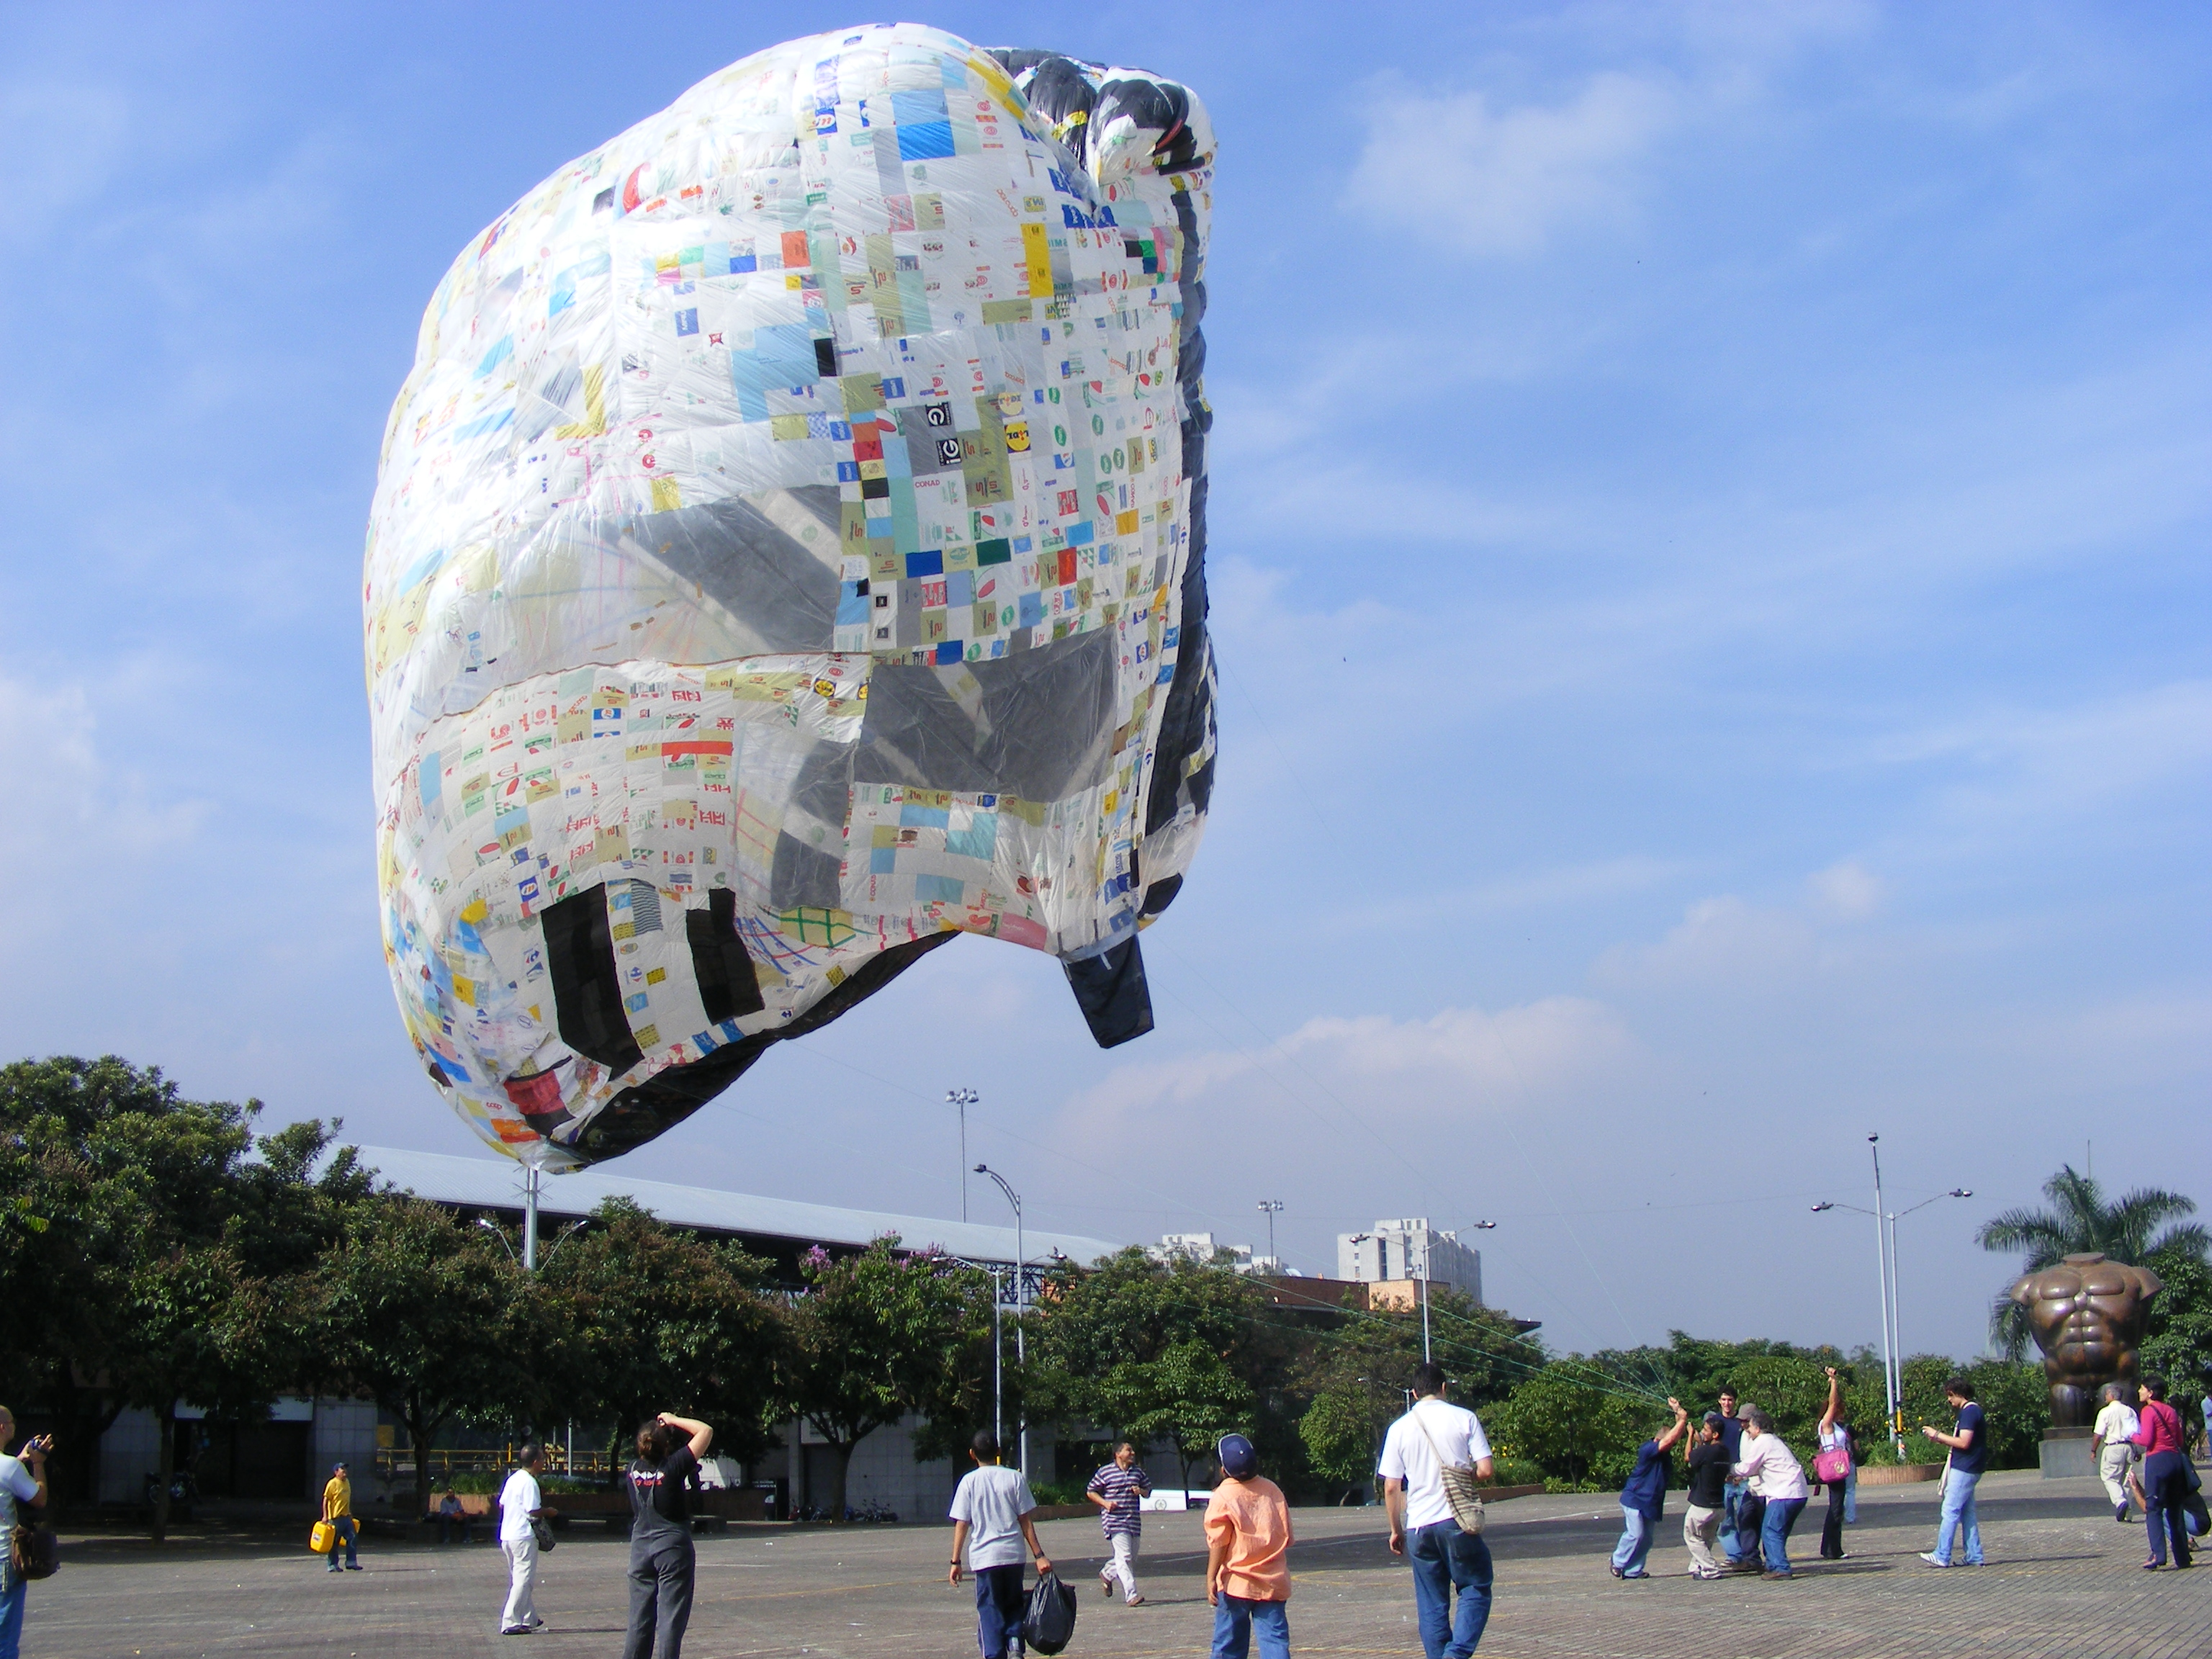 huge balloon made from plastic bags